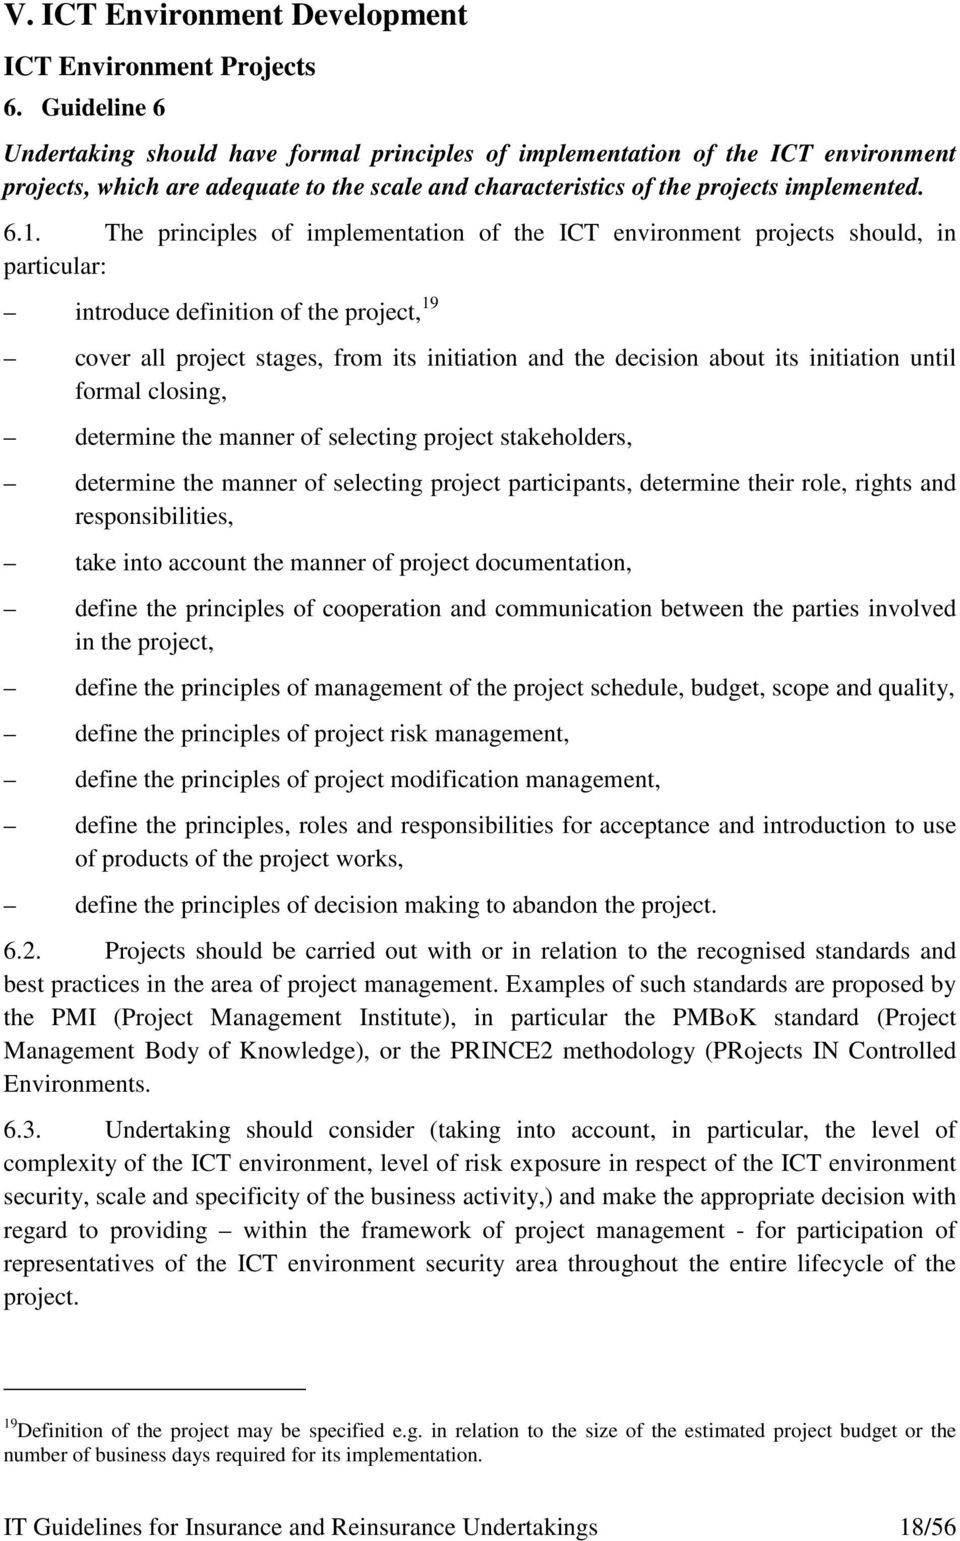 The principles of implementation of the ICT environment projects should, in particular: introduce definition of the project, 19 cover all project stages, from its initiation and the decision about